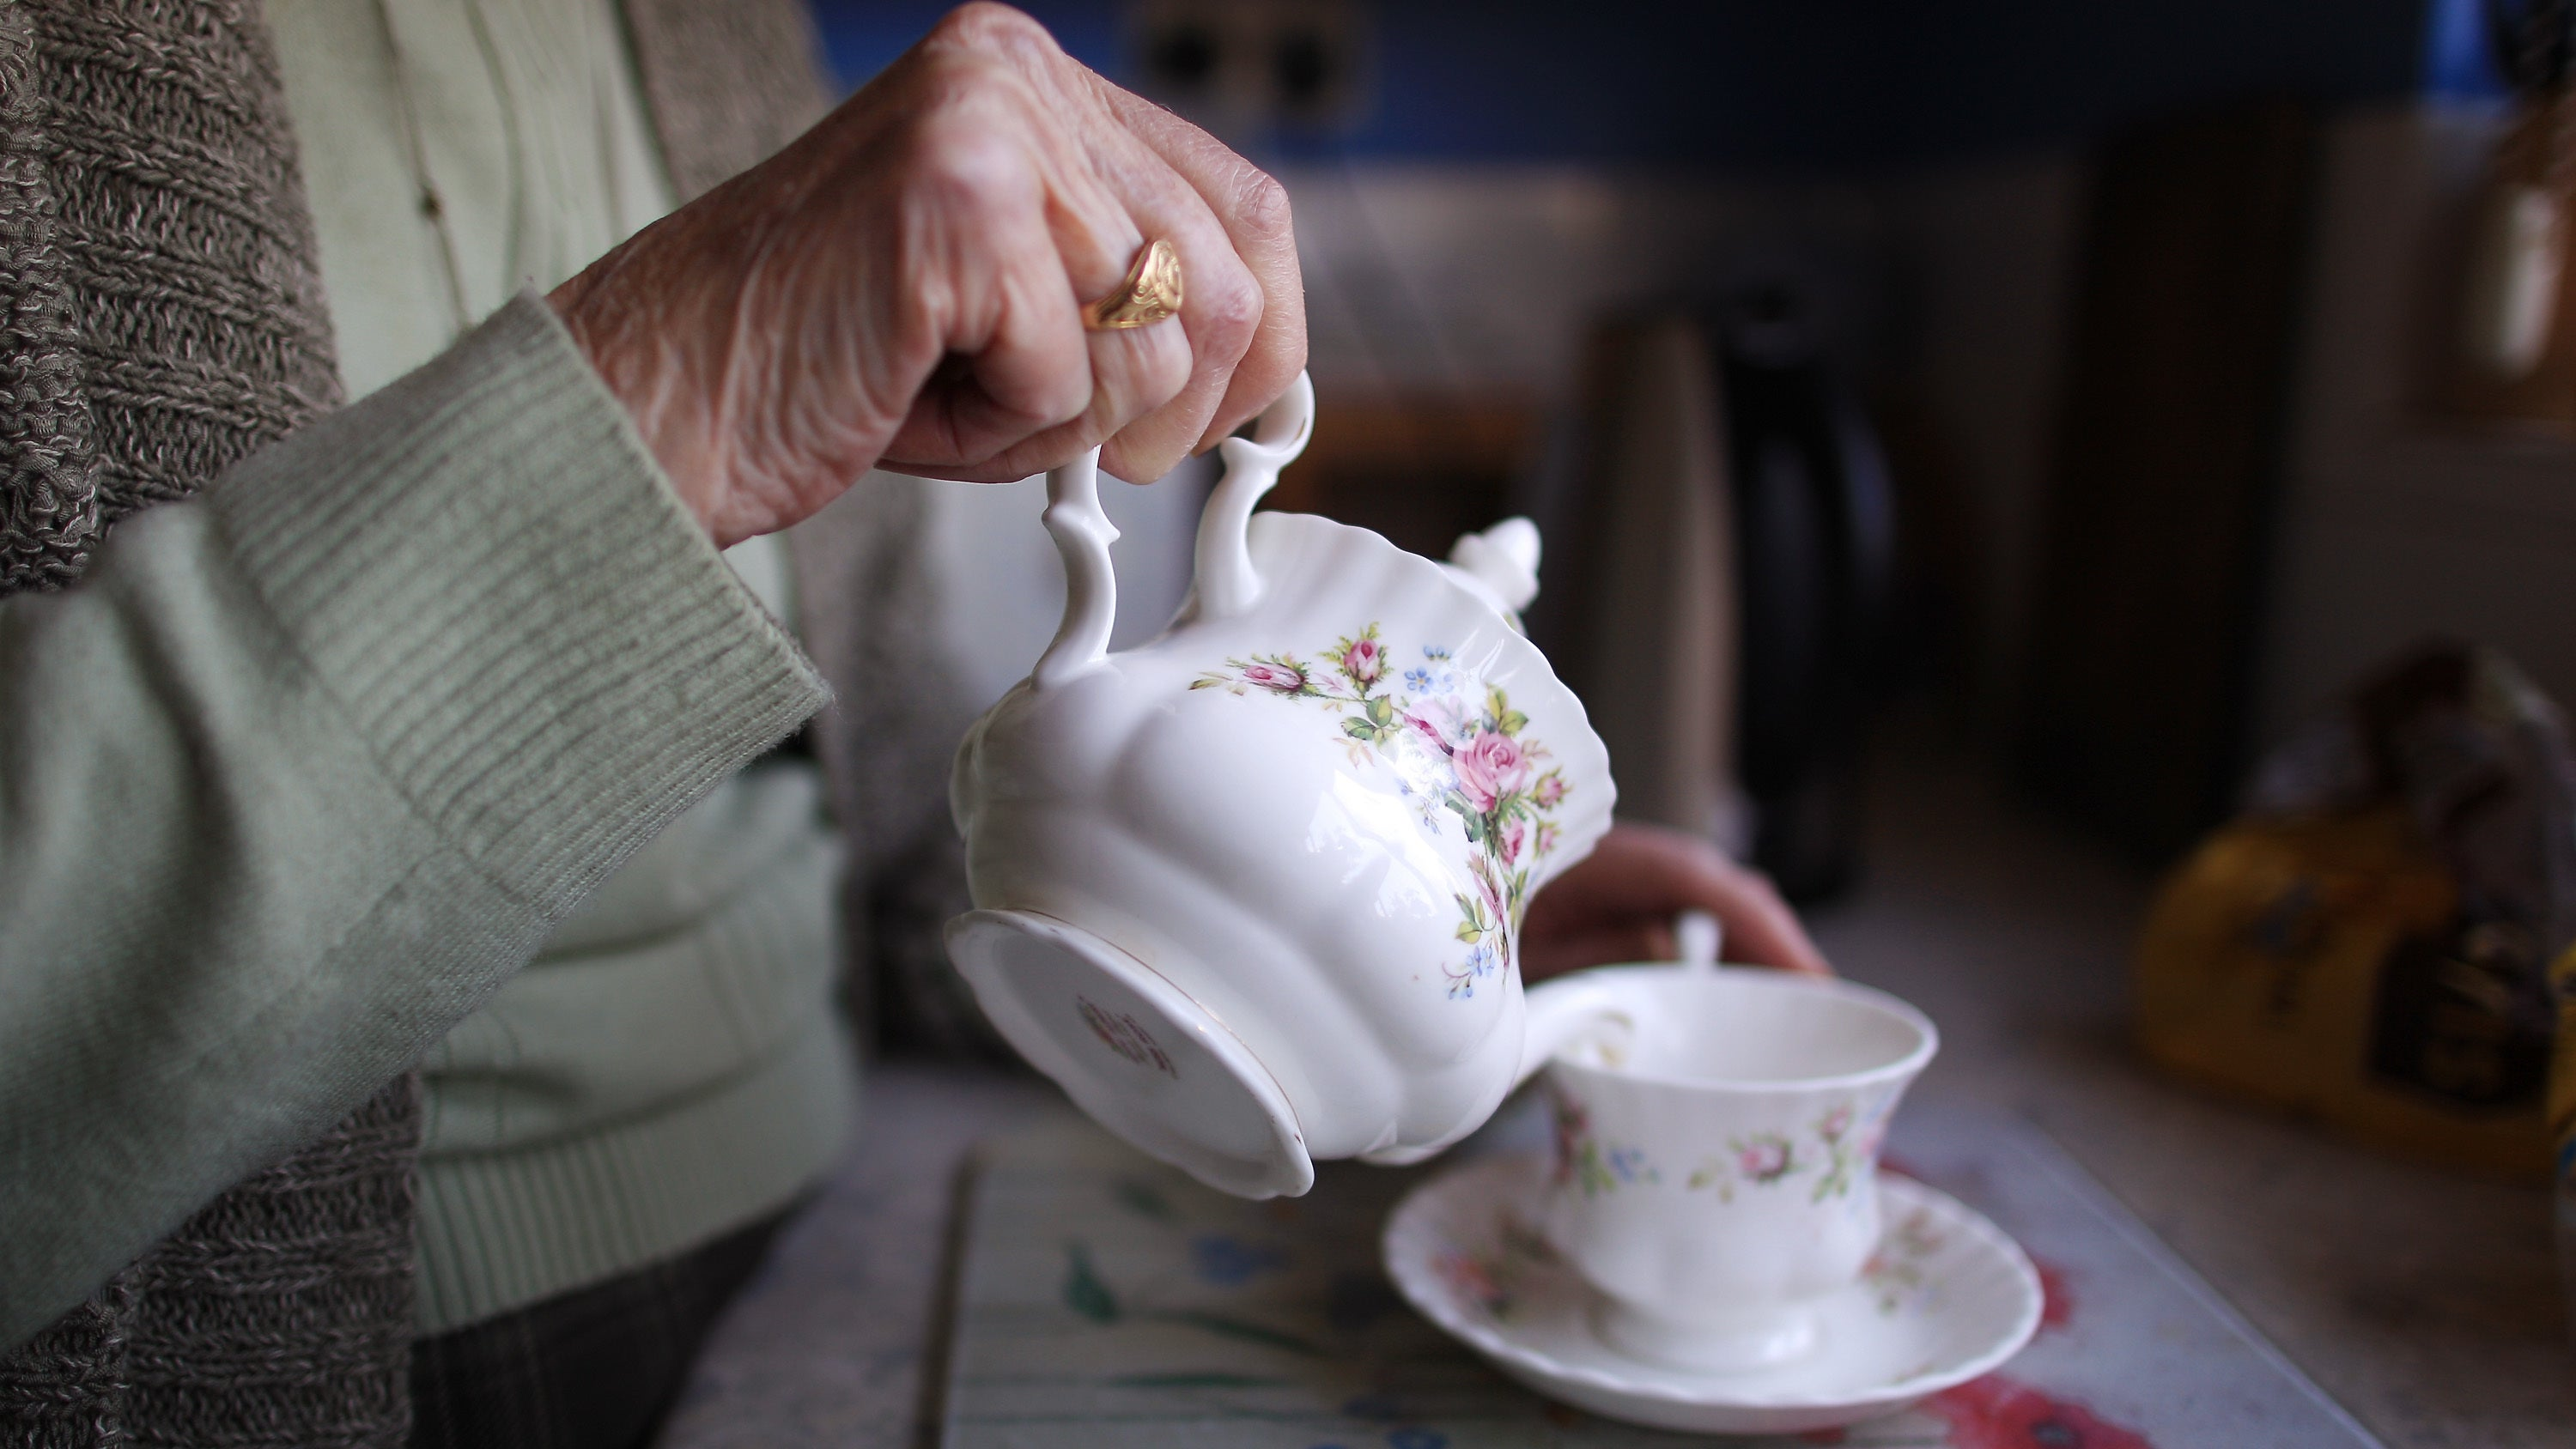 A Study Showing The Dangers Of Hot Tea Reveals How Complex Cancer Risks Can Be